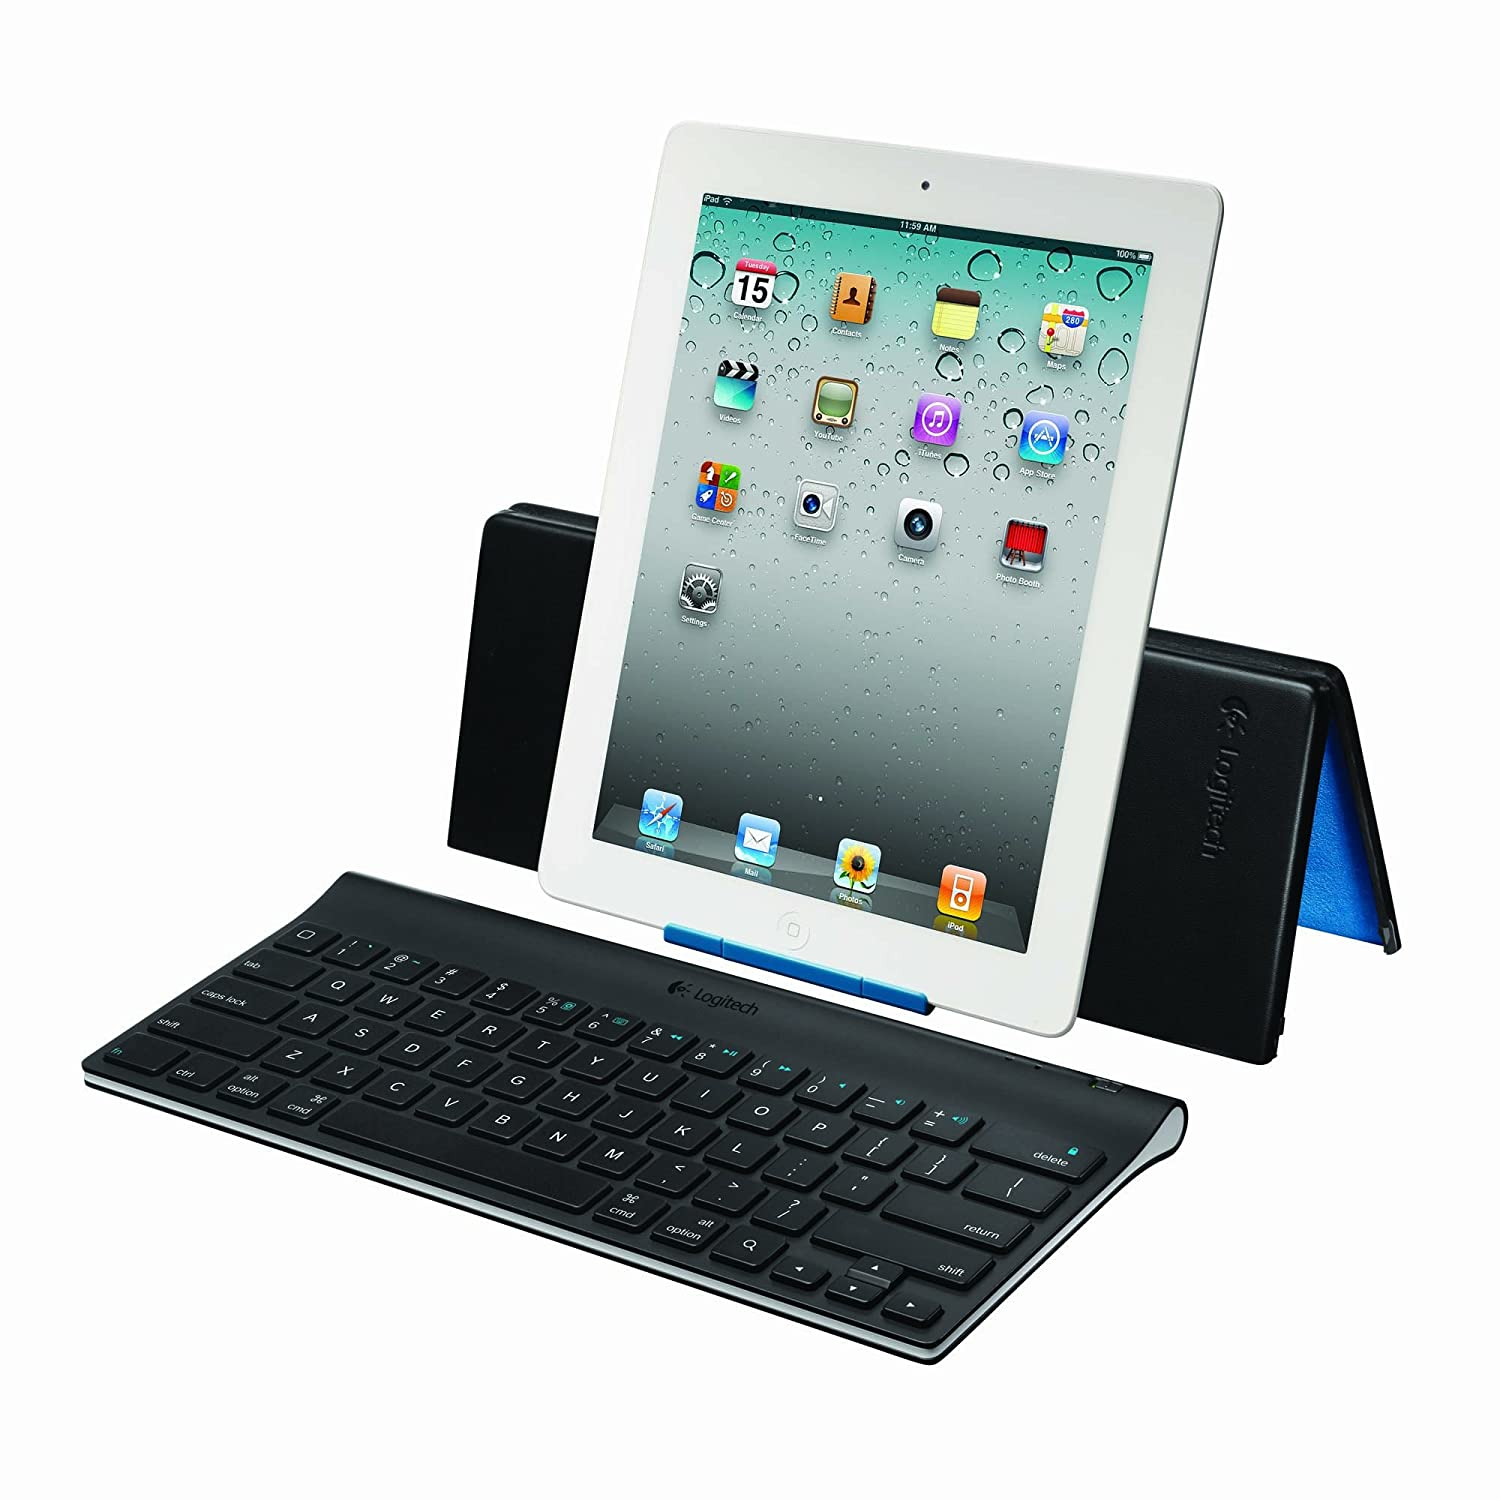 6c3f7008454 Amazon.com: Logitech Tablet Keyboard for iPads: Computers & Accessories